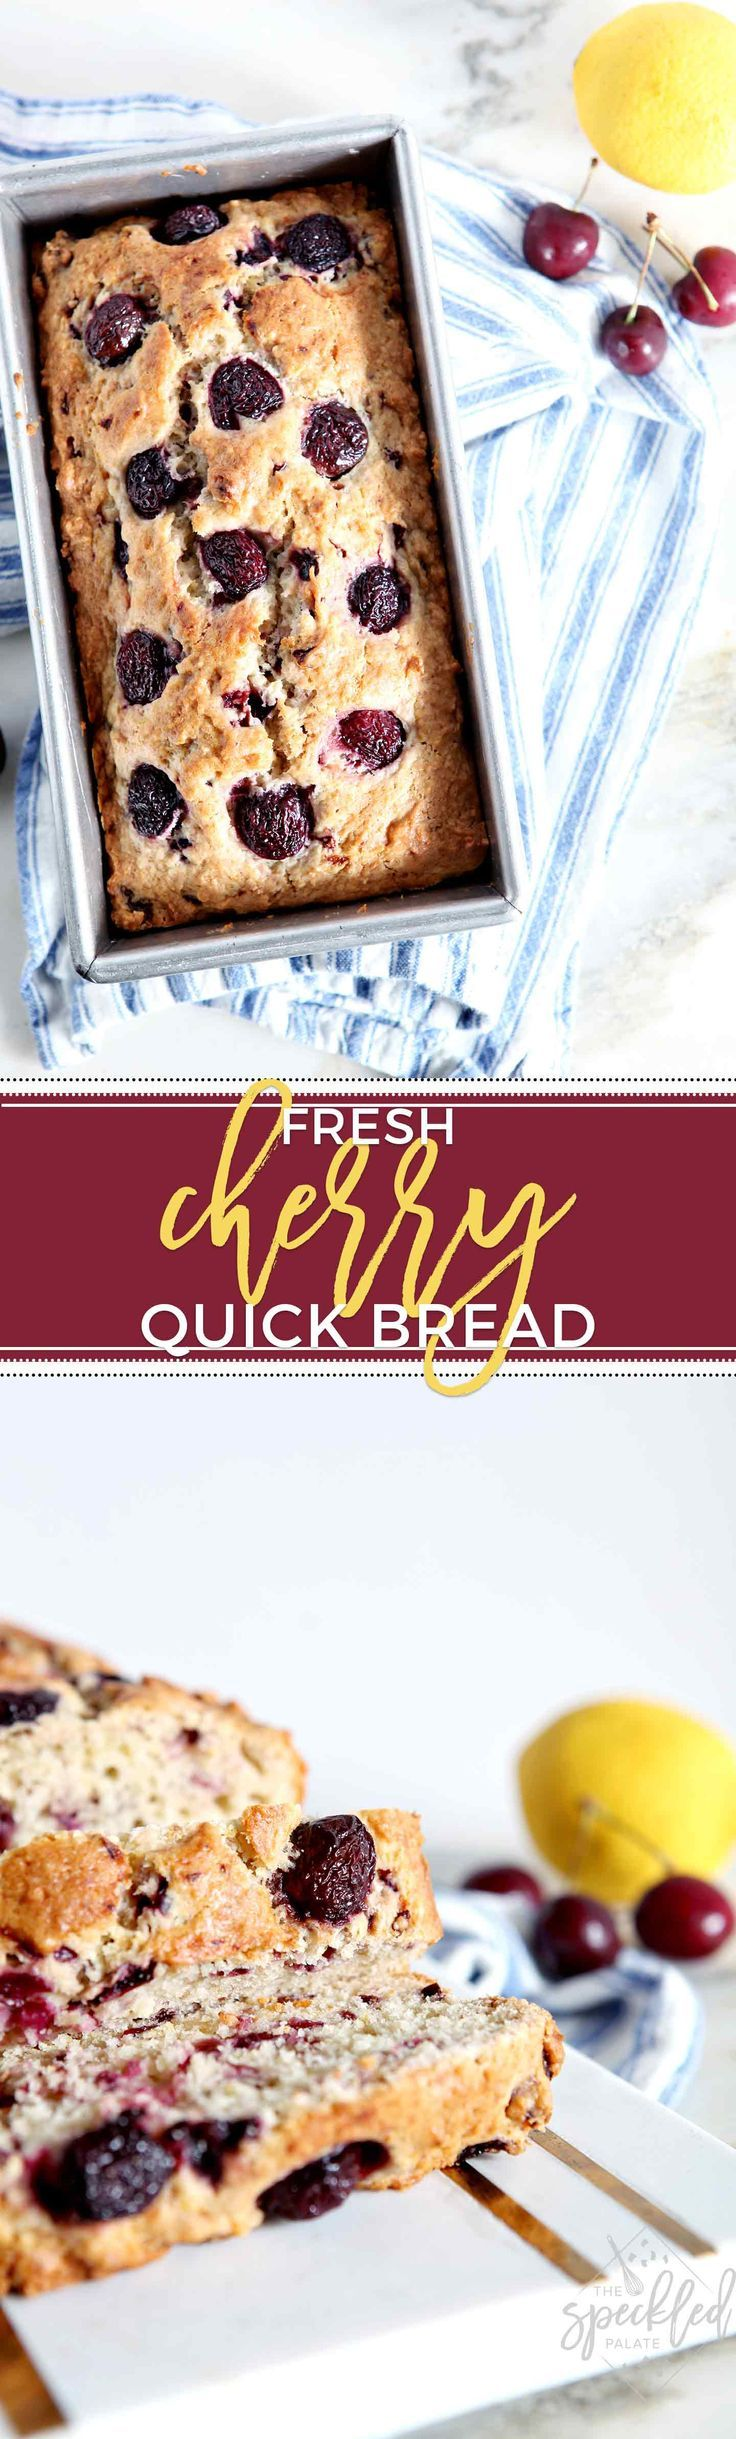 Fresh Cherry Quick Bread makes the PERFECT breakfast or sweet treat! This quick bread is destined to become a classic summertime recipe. #recipe #breakfast